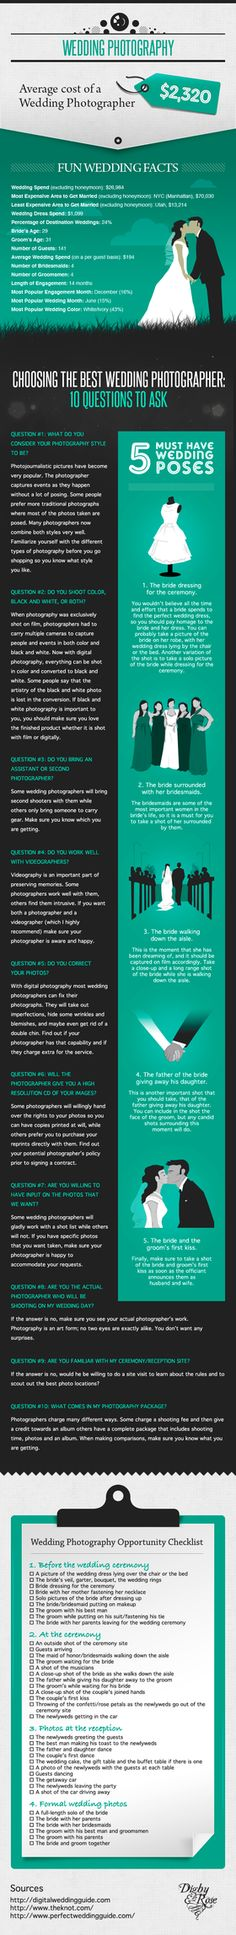 Complete guide to choosing and hiring a wedding photographer